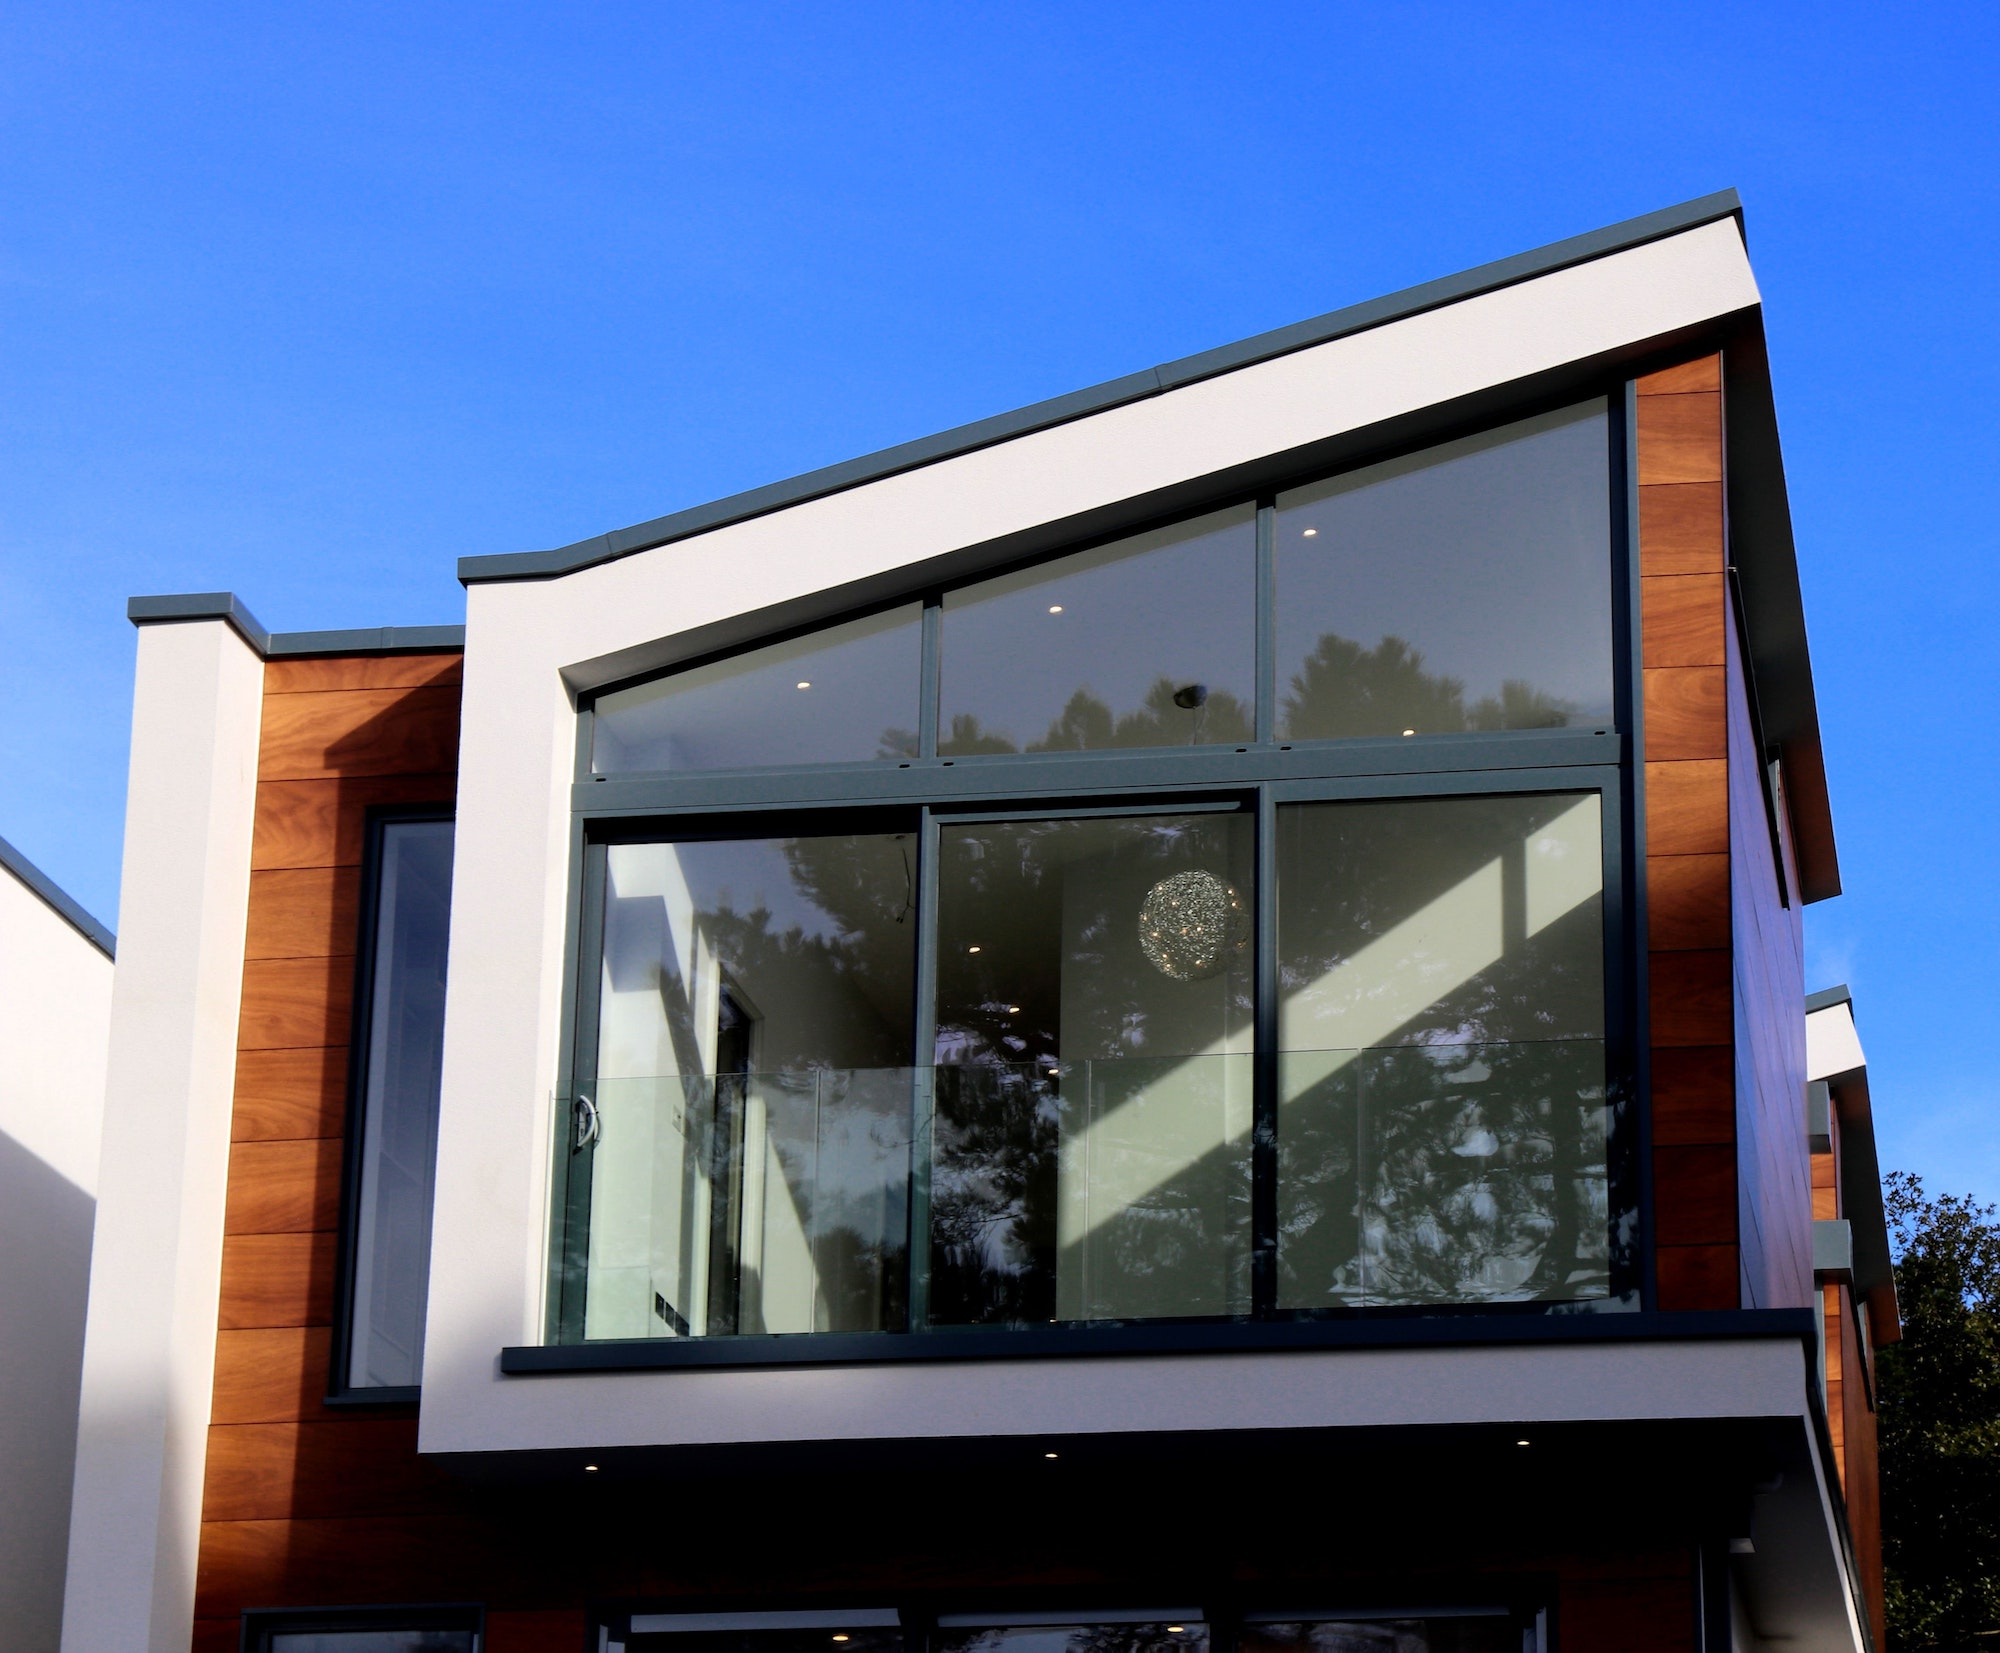 How to add upvc windows to your home | Home Interiors | Elle Blonde Luxury Lifestyle Destination Blog